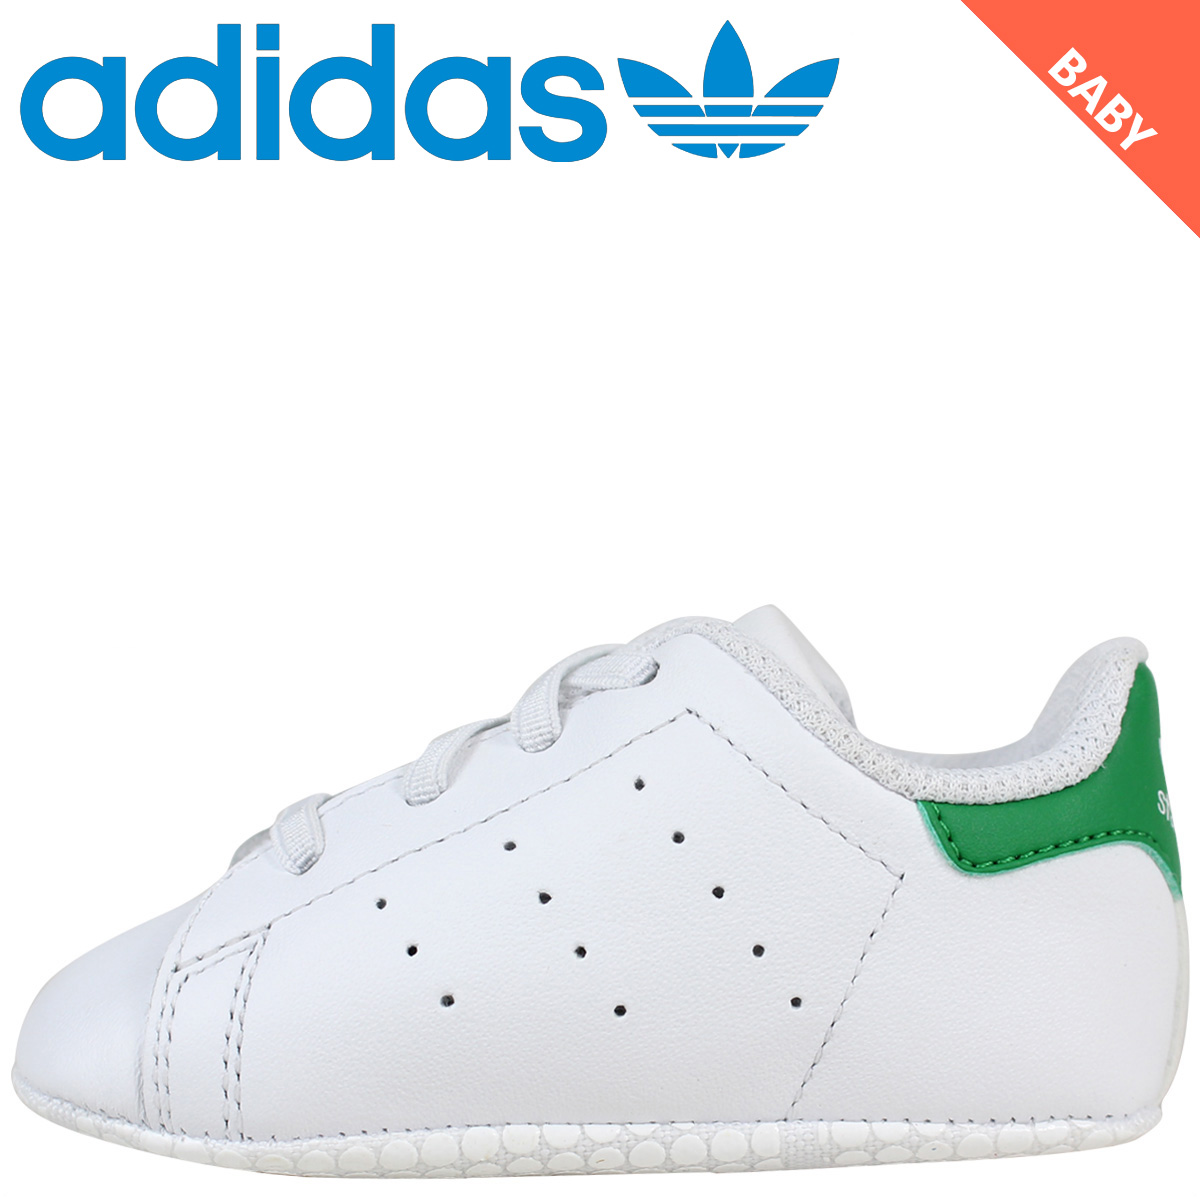 5 Stan Smith Sneakers